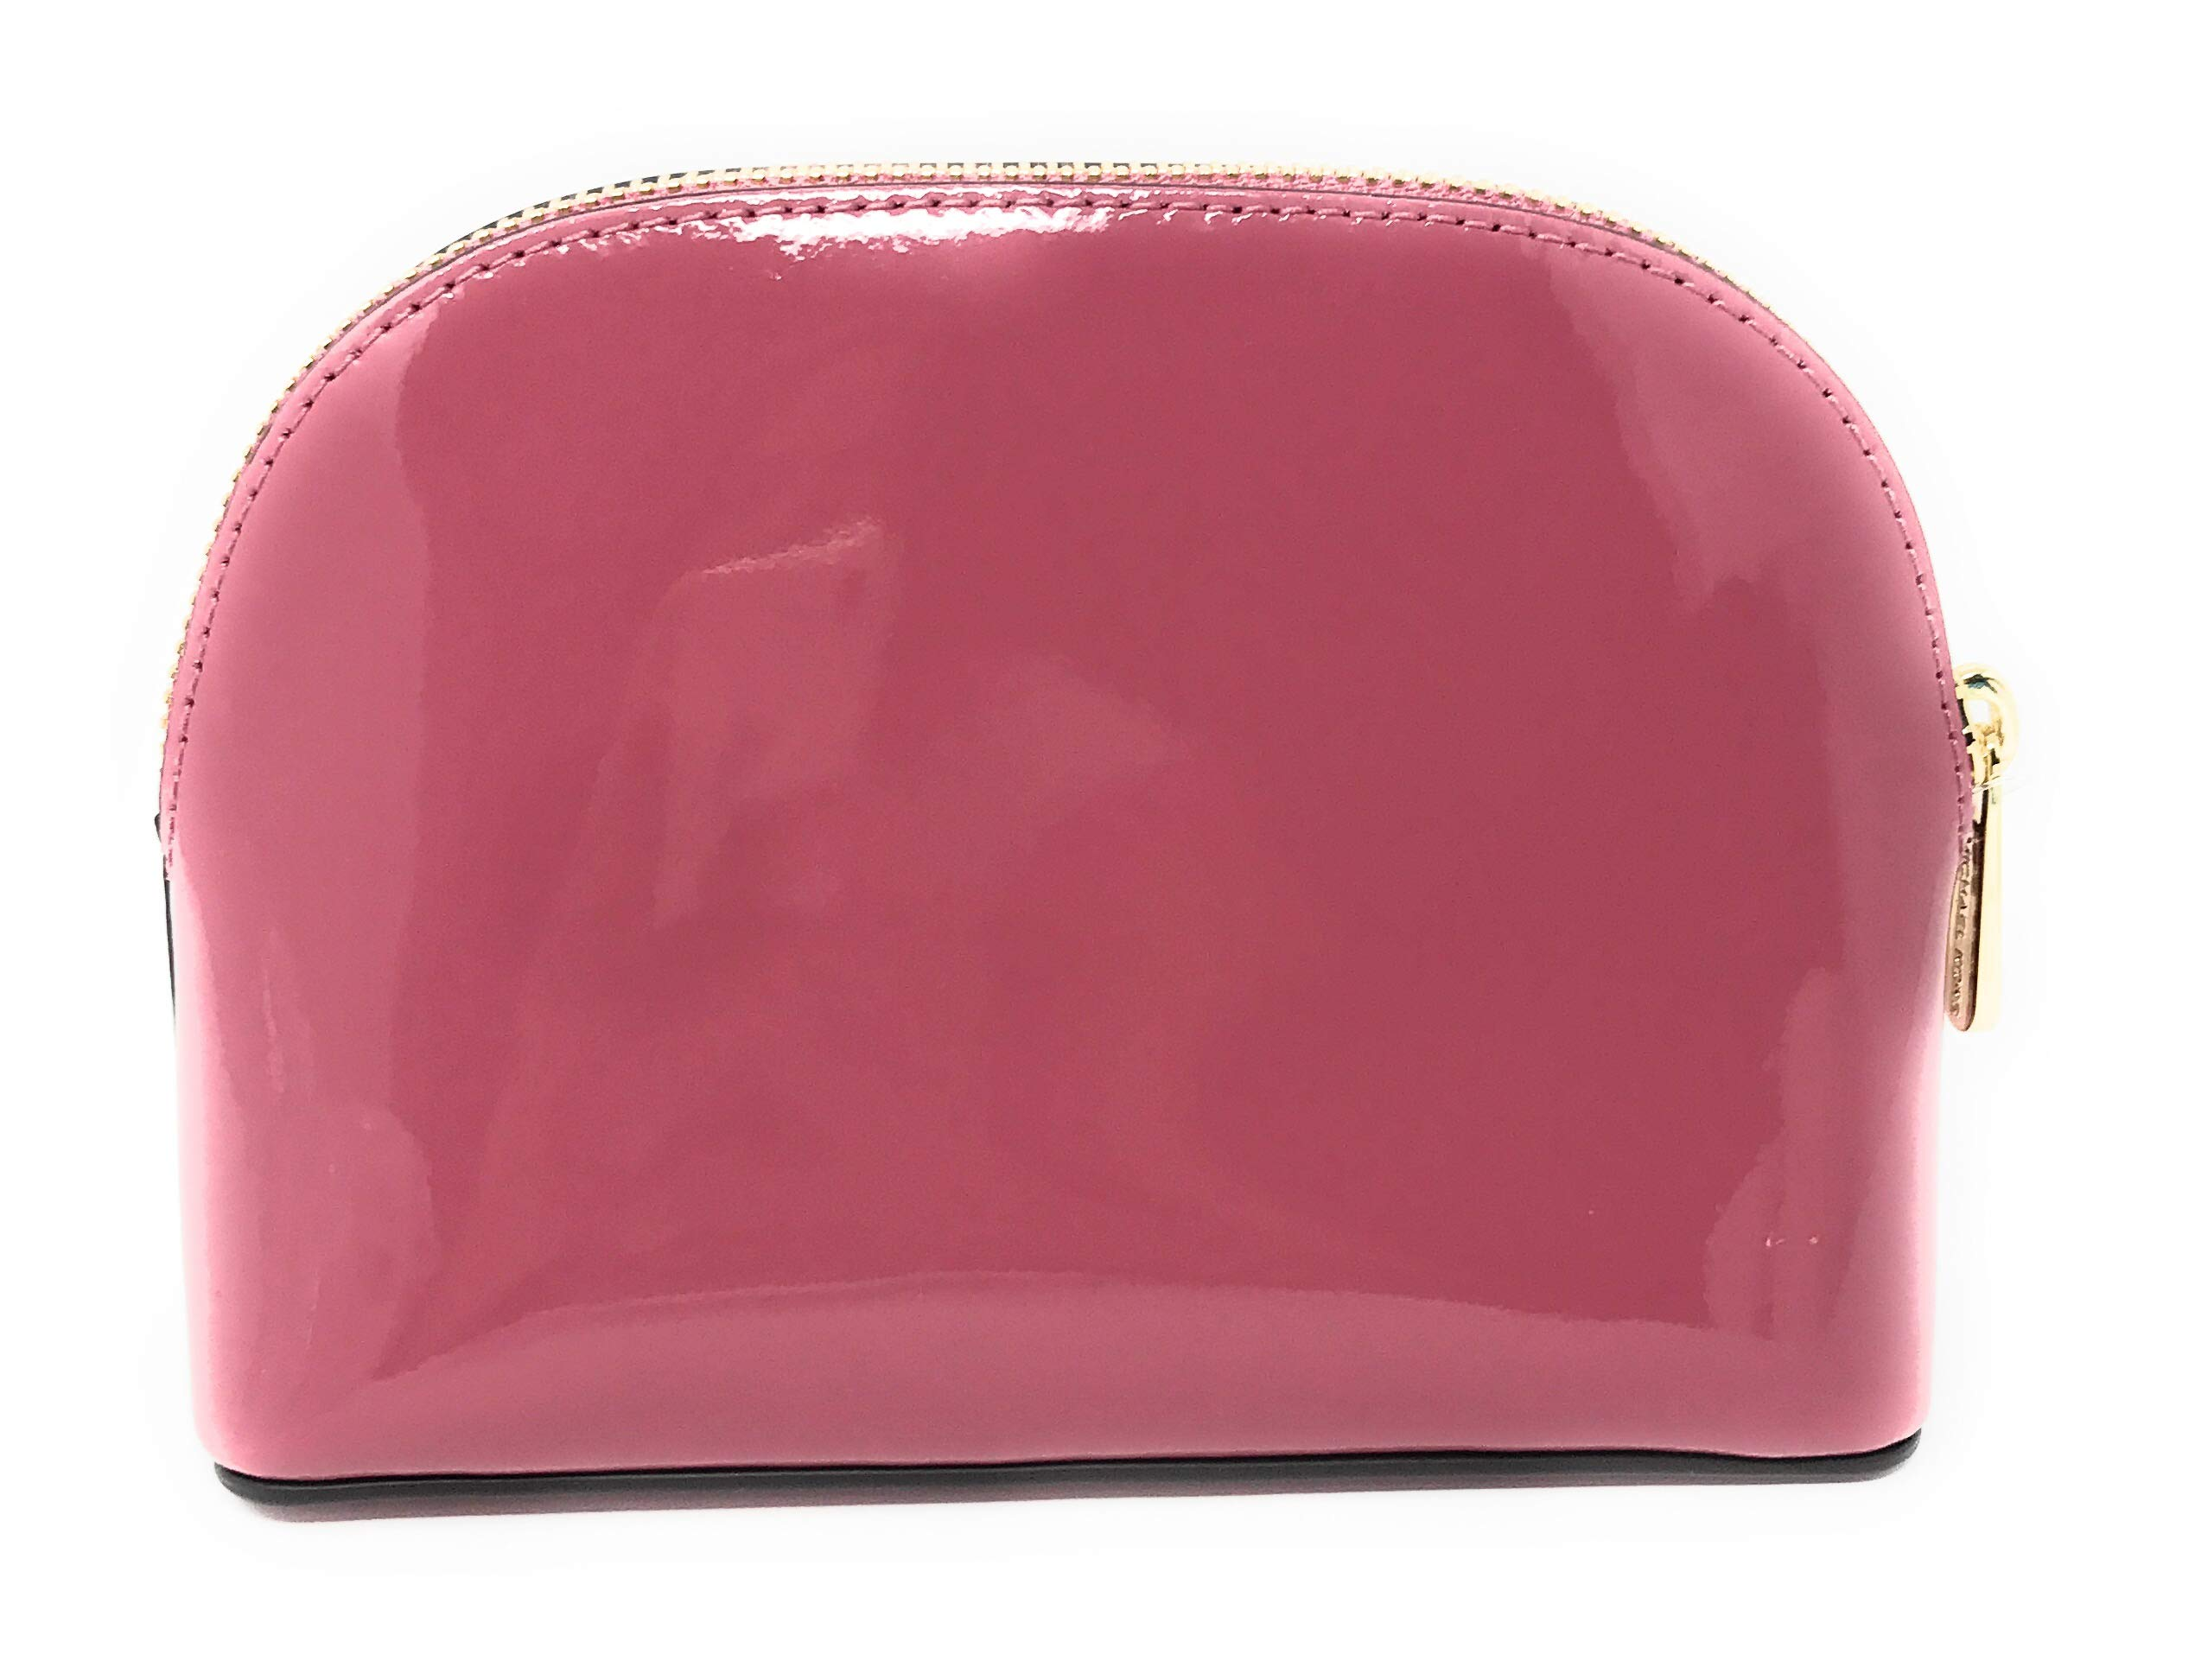 Michael Kors Jet Set Travel Patent Leather Cosmetic Travel Pouch (Tulip) by Michael Kors (Image #3)